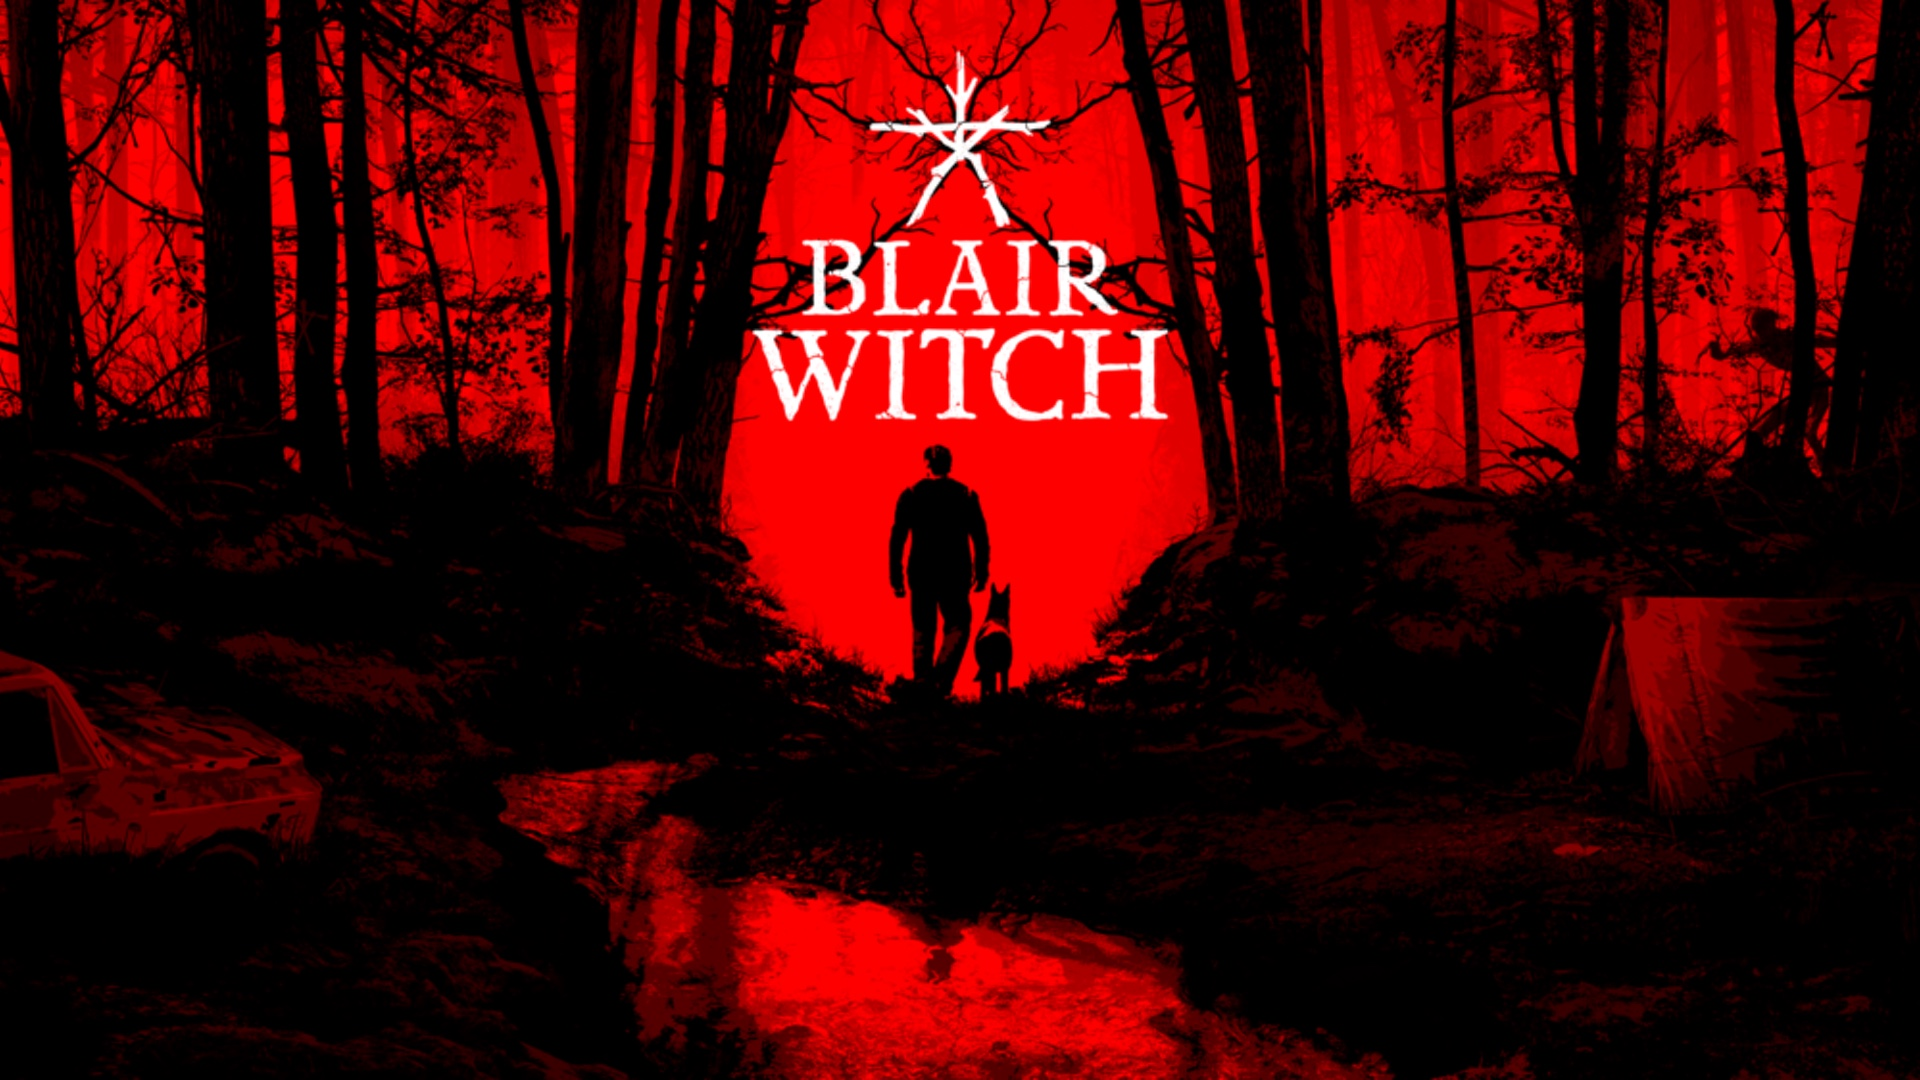 the-blair-witch-has-its-own-video-game-and-heres-the-creepy-trailer-social.jpg